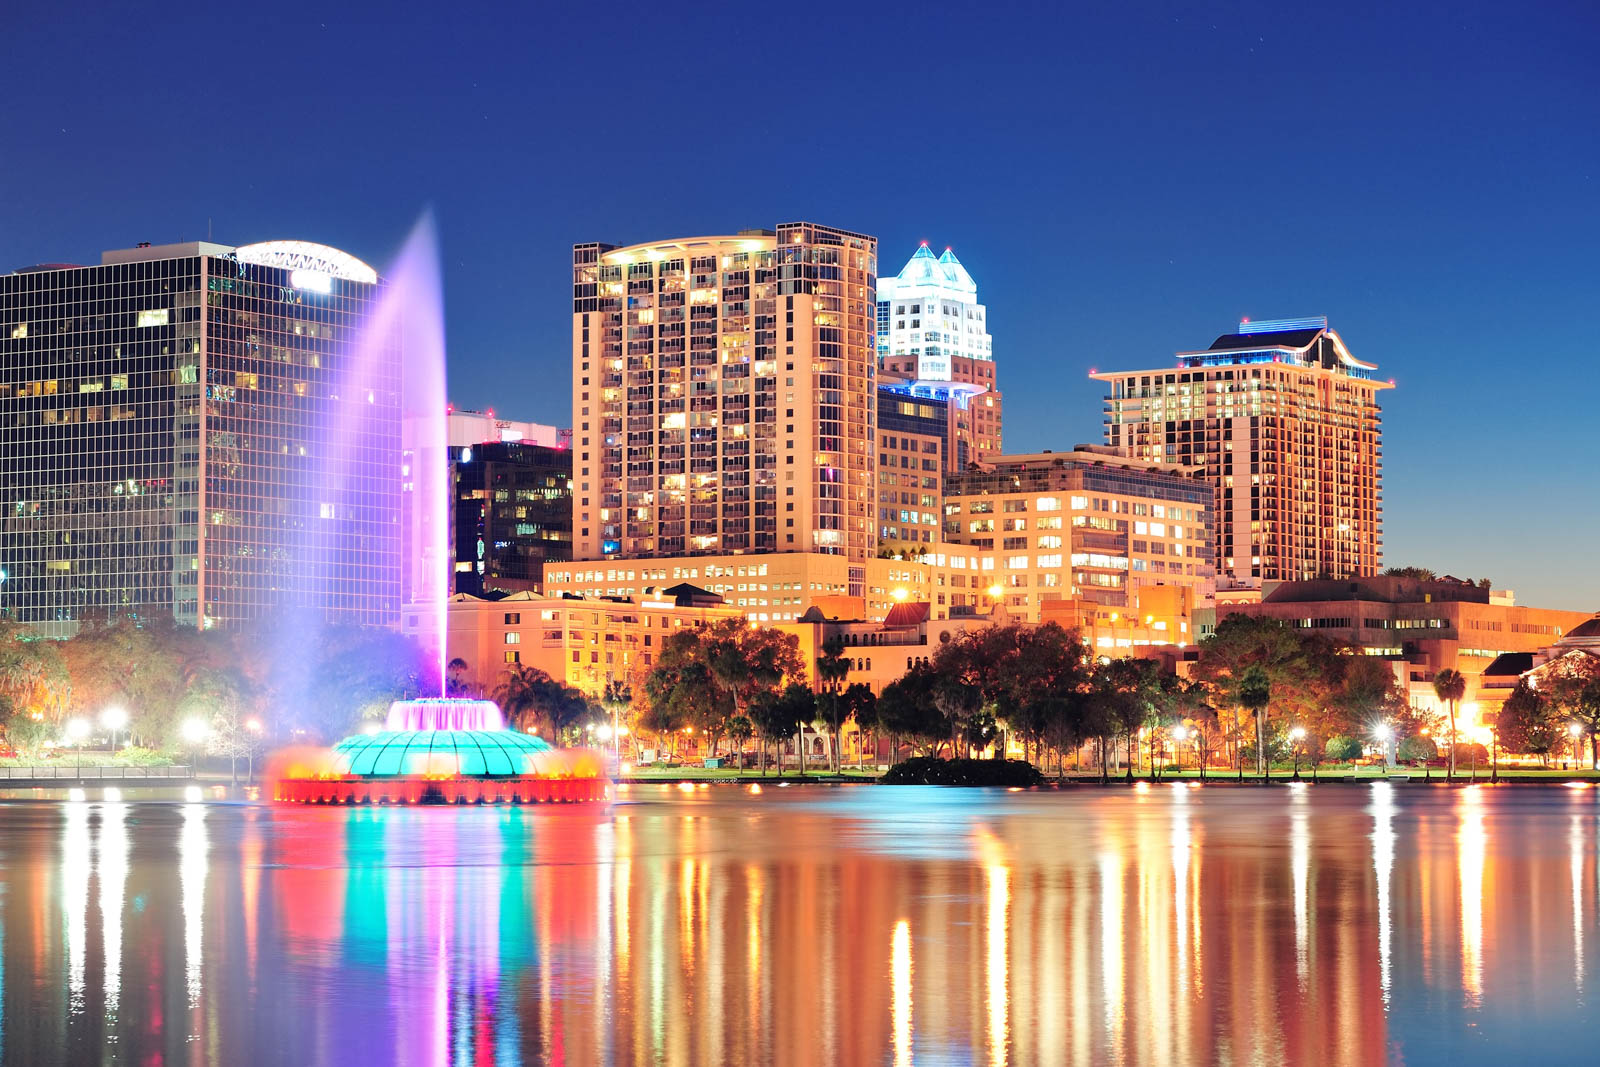 Orlando downtown skyline panorama over Lake Eola. The nightlife in the city is one of the best things to do in Orlando for Adults and activities on Lake Eola are unique things to do in Orlando.